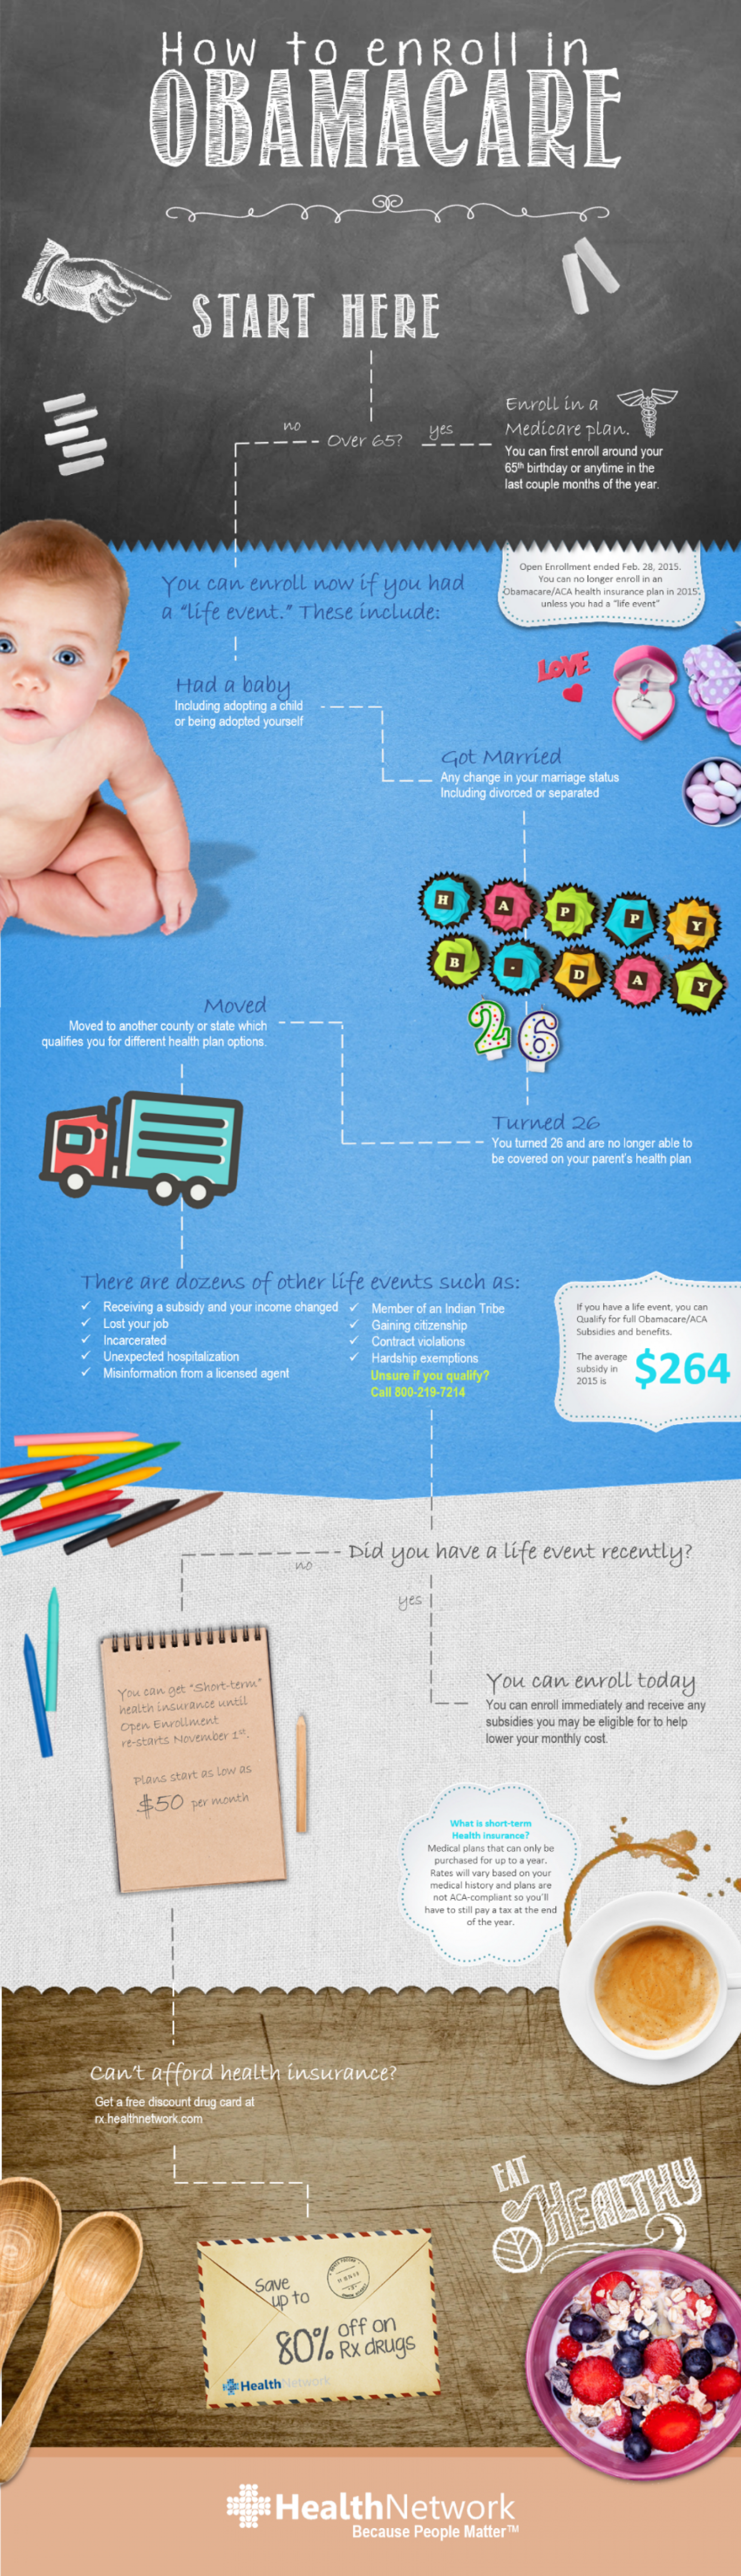 How To Navigate Obamacare Infographic